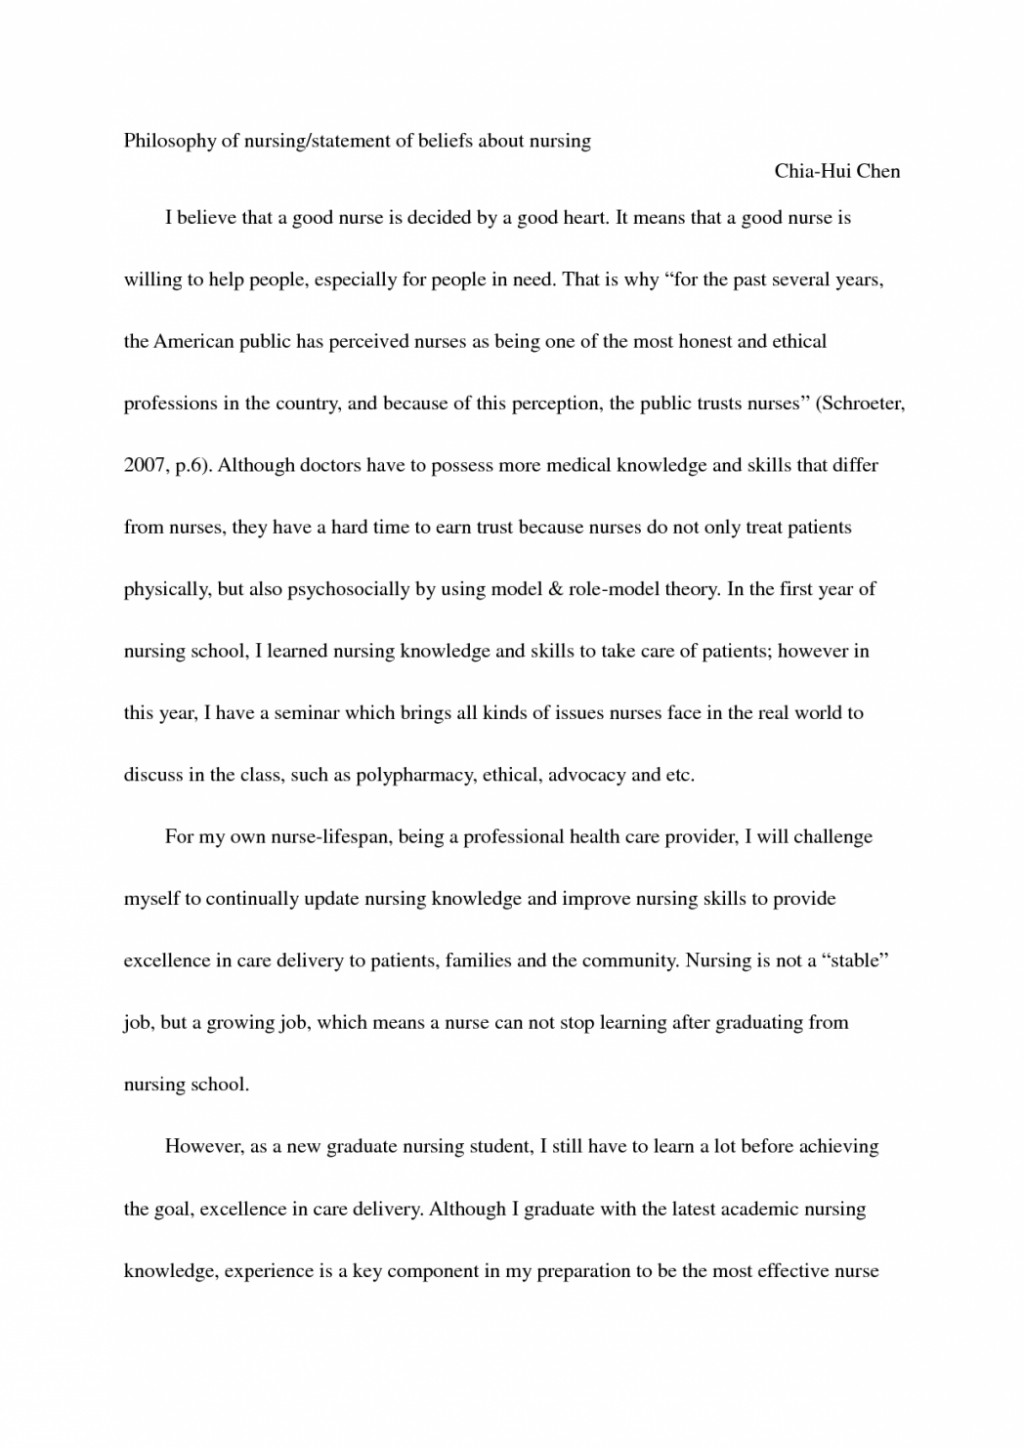 018 Sample Essay For Nursing School Example Philosophy Template Nurse Practitionerdmission Examples Mission Statement Zzf Graduate Program 1048x1482 Why I Want To Stunning Be A Admission Pdf Large